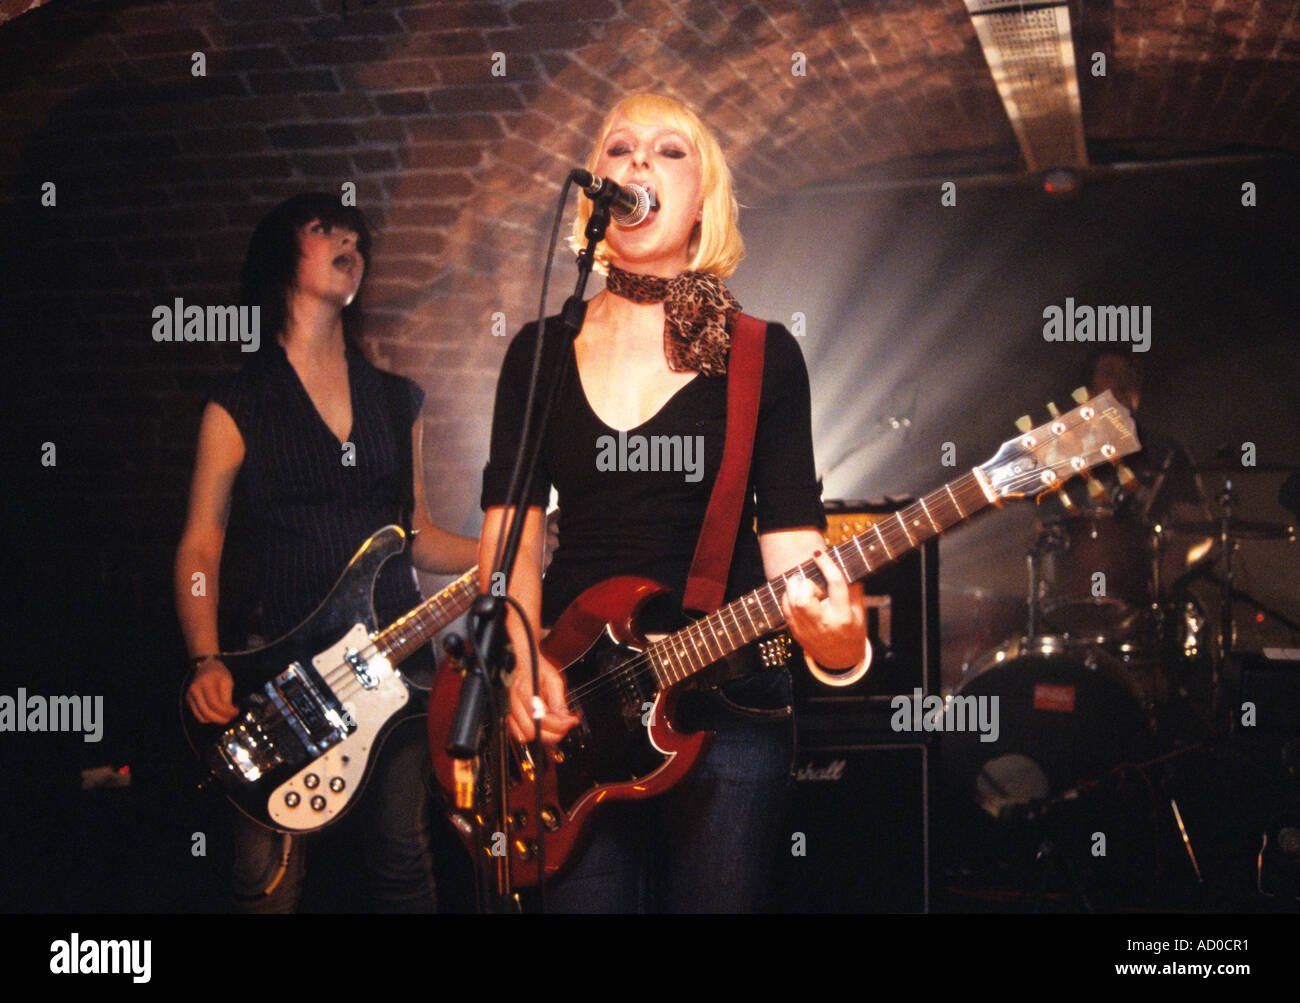 'We Start Fires', rock band, performing 2006, Shrewsbury, The Buttermarket, UK, 2005 - Stock Image